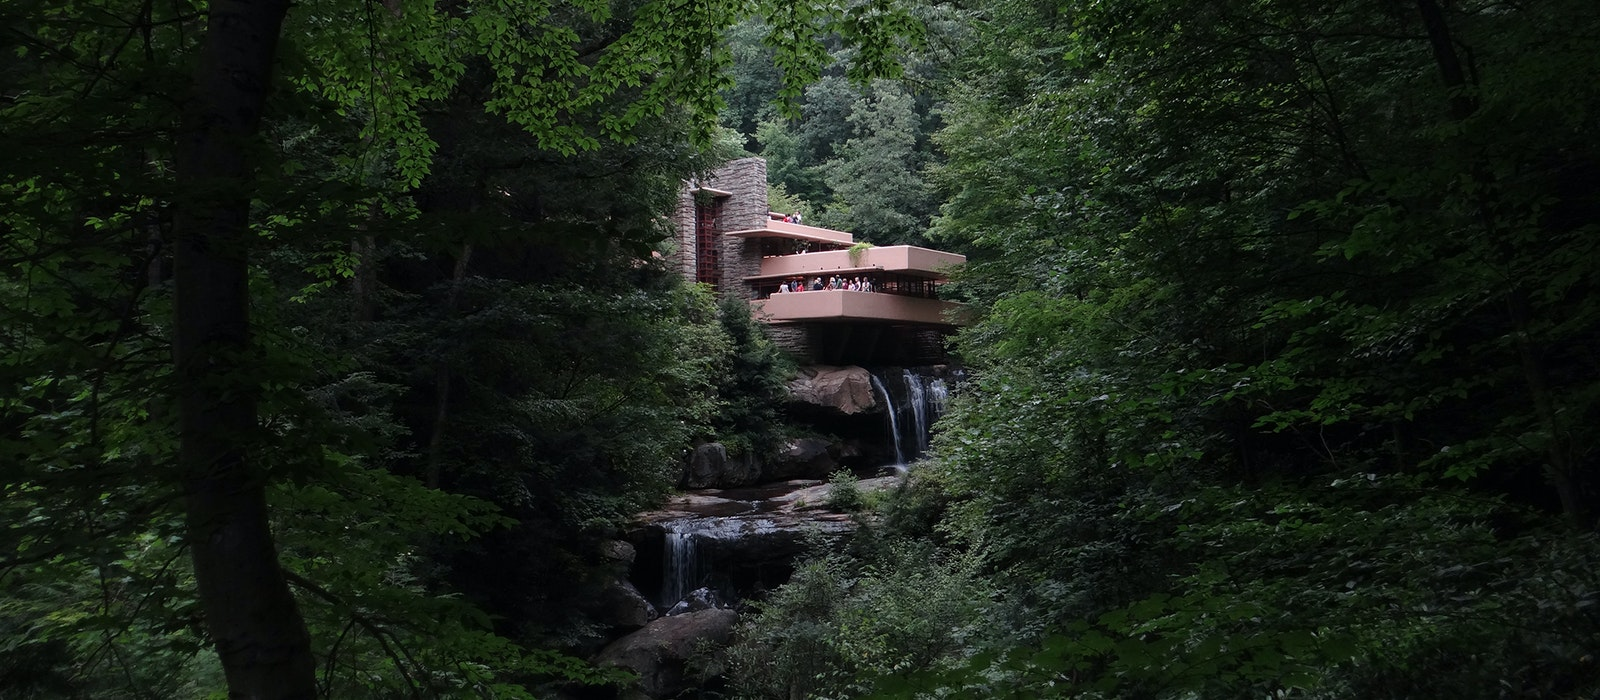 Frank Lloyd Wright's iconic Fallingwater home is one of his eight buildings that received a UNESCO designation.